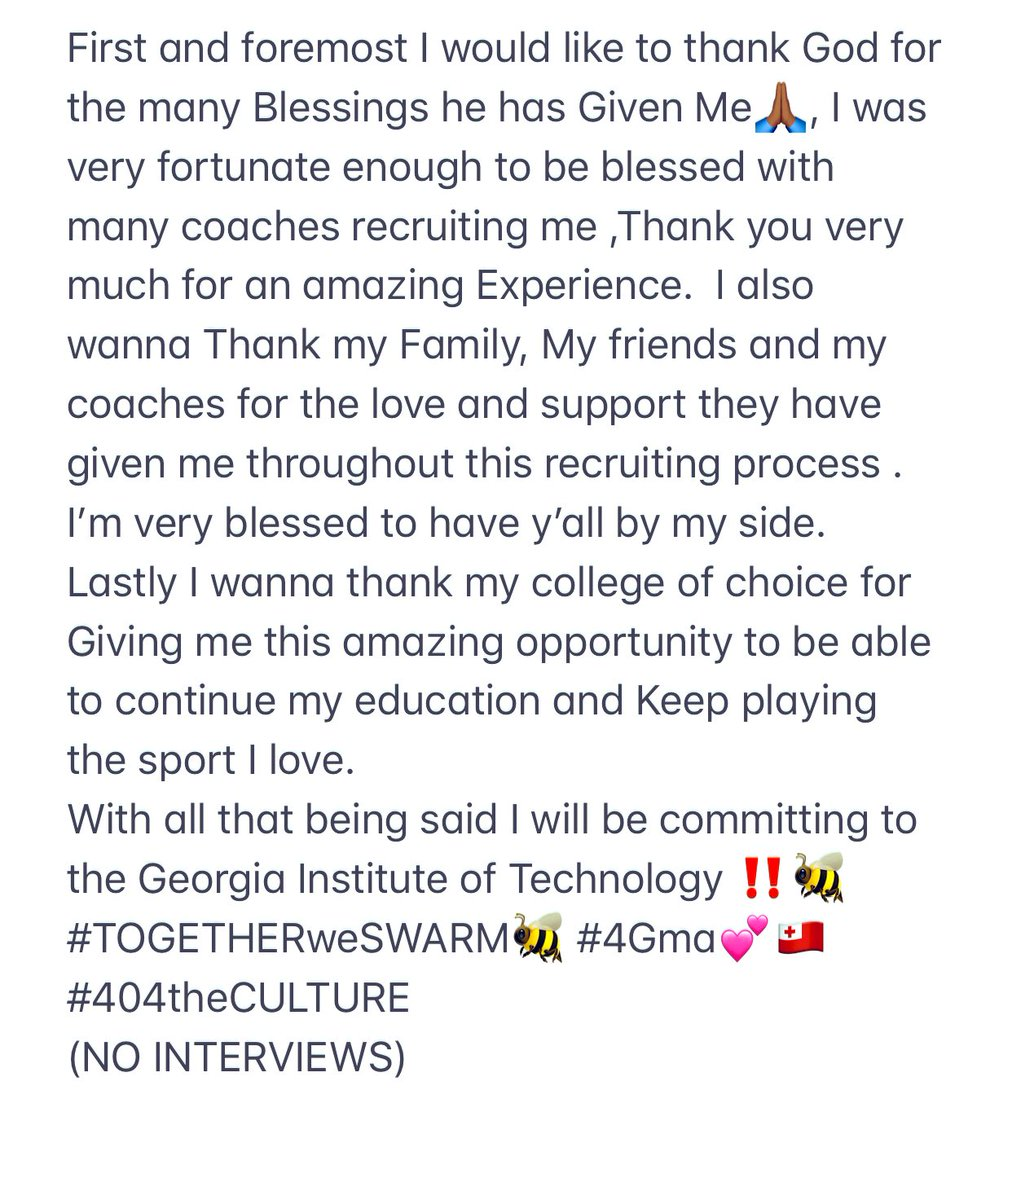 AG2G🙏🏾,IM HOME‼️‼️ #COMMITTED🤩 #TOGETHERweSwarm🐝 #404theCULTURE #4Gma💕 #MMT🇹🇴 #CvFootball🦅